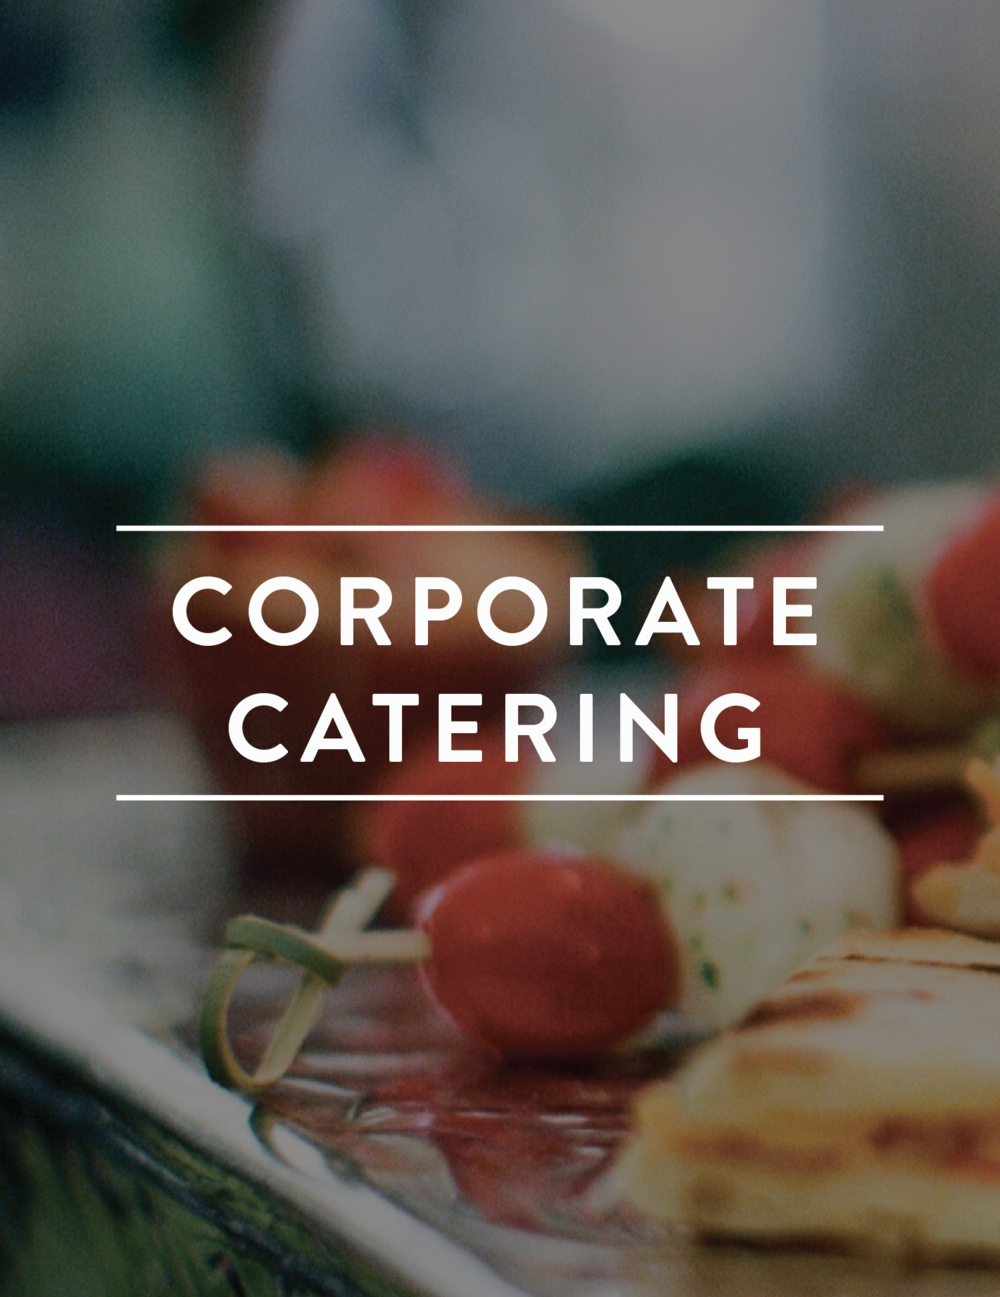 Let us help you plan your nextcorporate event! Daily lunches,breakfasts, open houses, grandopenings, seminars, banquetsand receptions, we can do it all! -